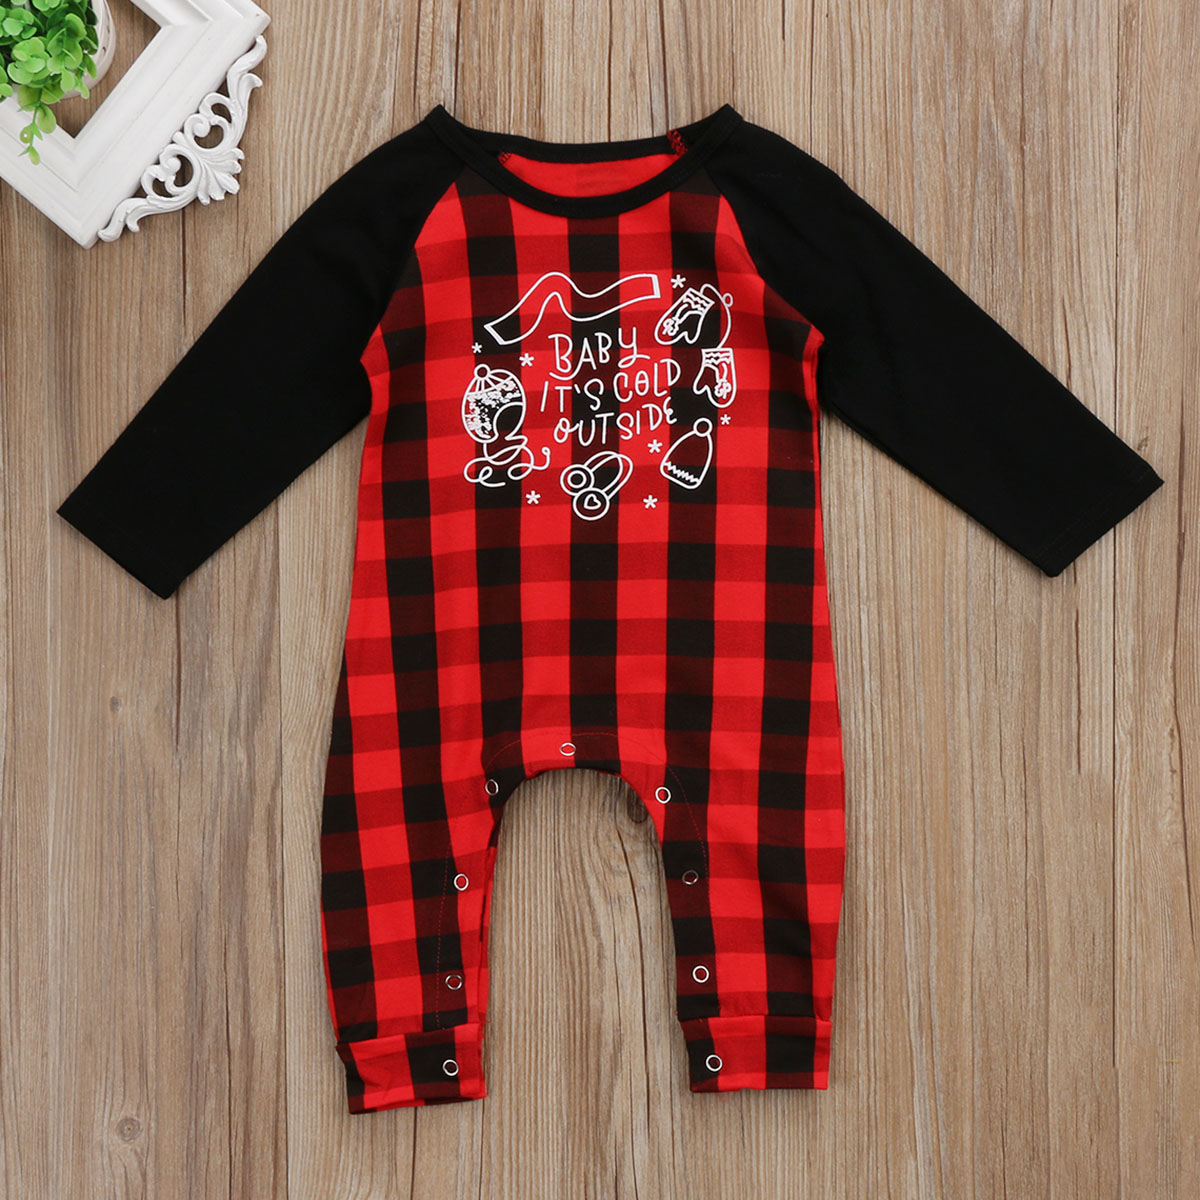 Toddler Newborn Baby Boy Girl Plaid Romper Jumpsuit Playsuit Long Sleeve Autumn Cotton Infant Clothes 2017 baby girl summer romper newborn baby romper suits infant boy cotton toddler striped clothes baby boy short sleeve jumpsuits